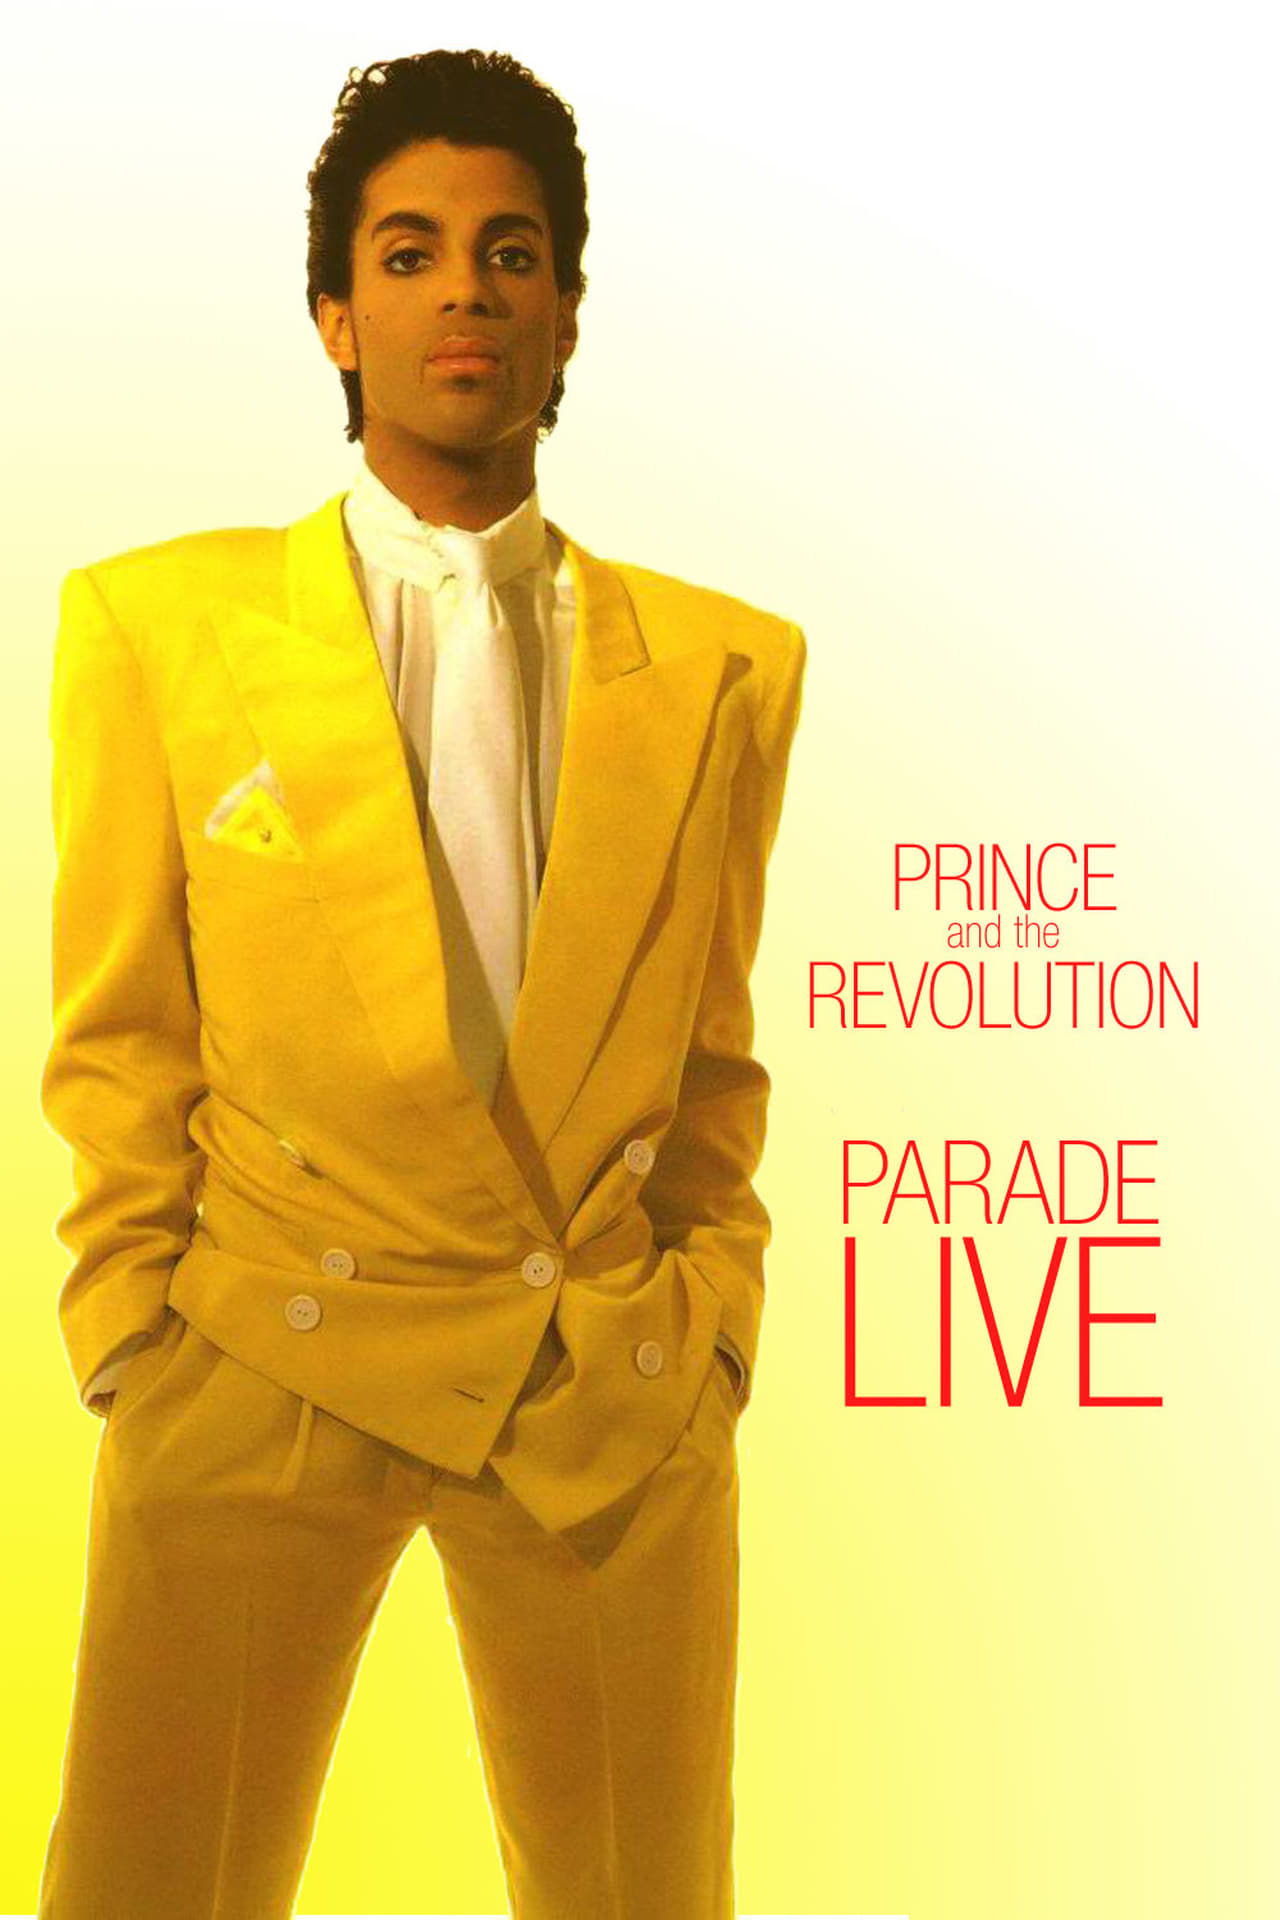 Prince and the Revolution: Parade LIVE